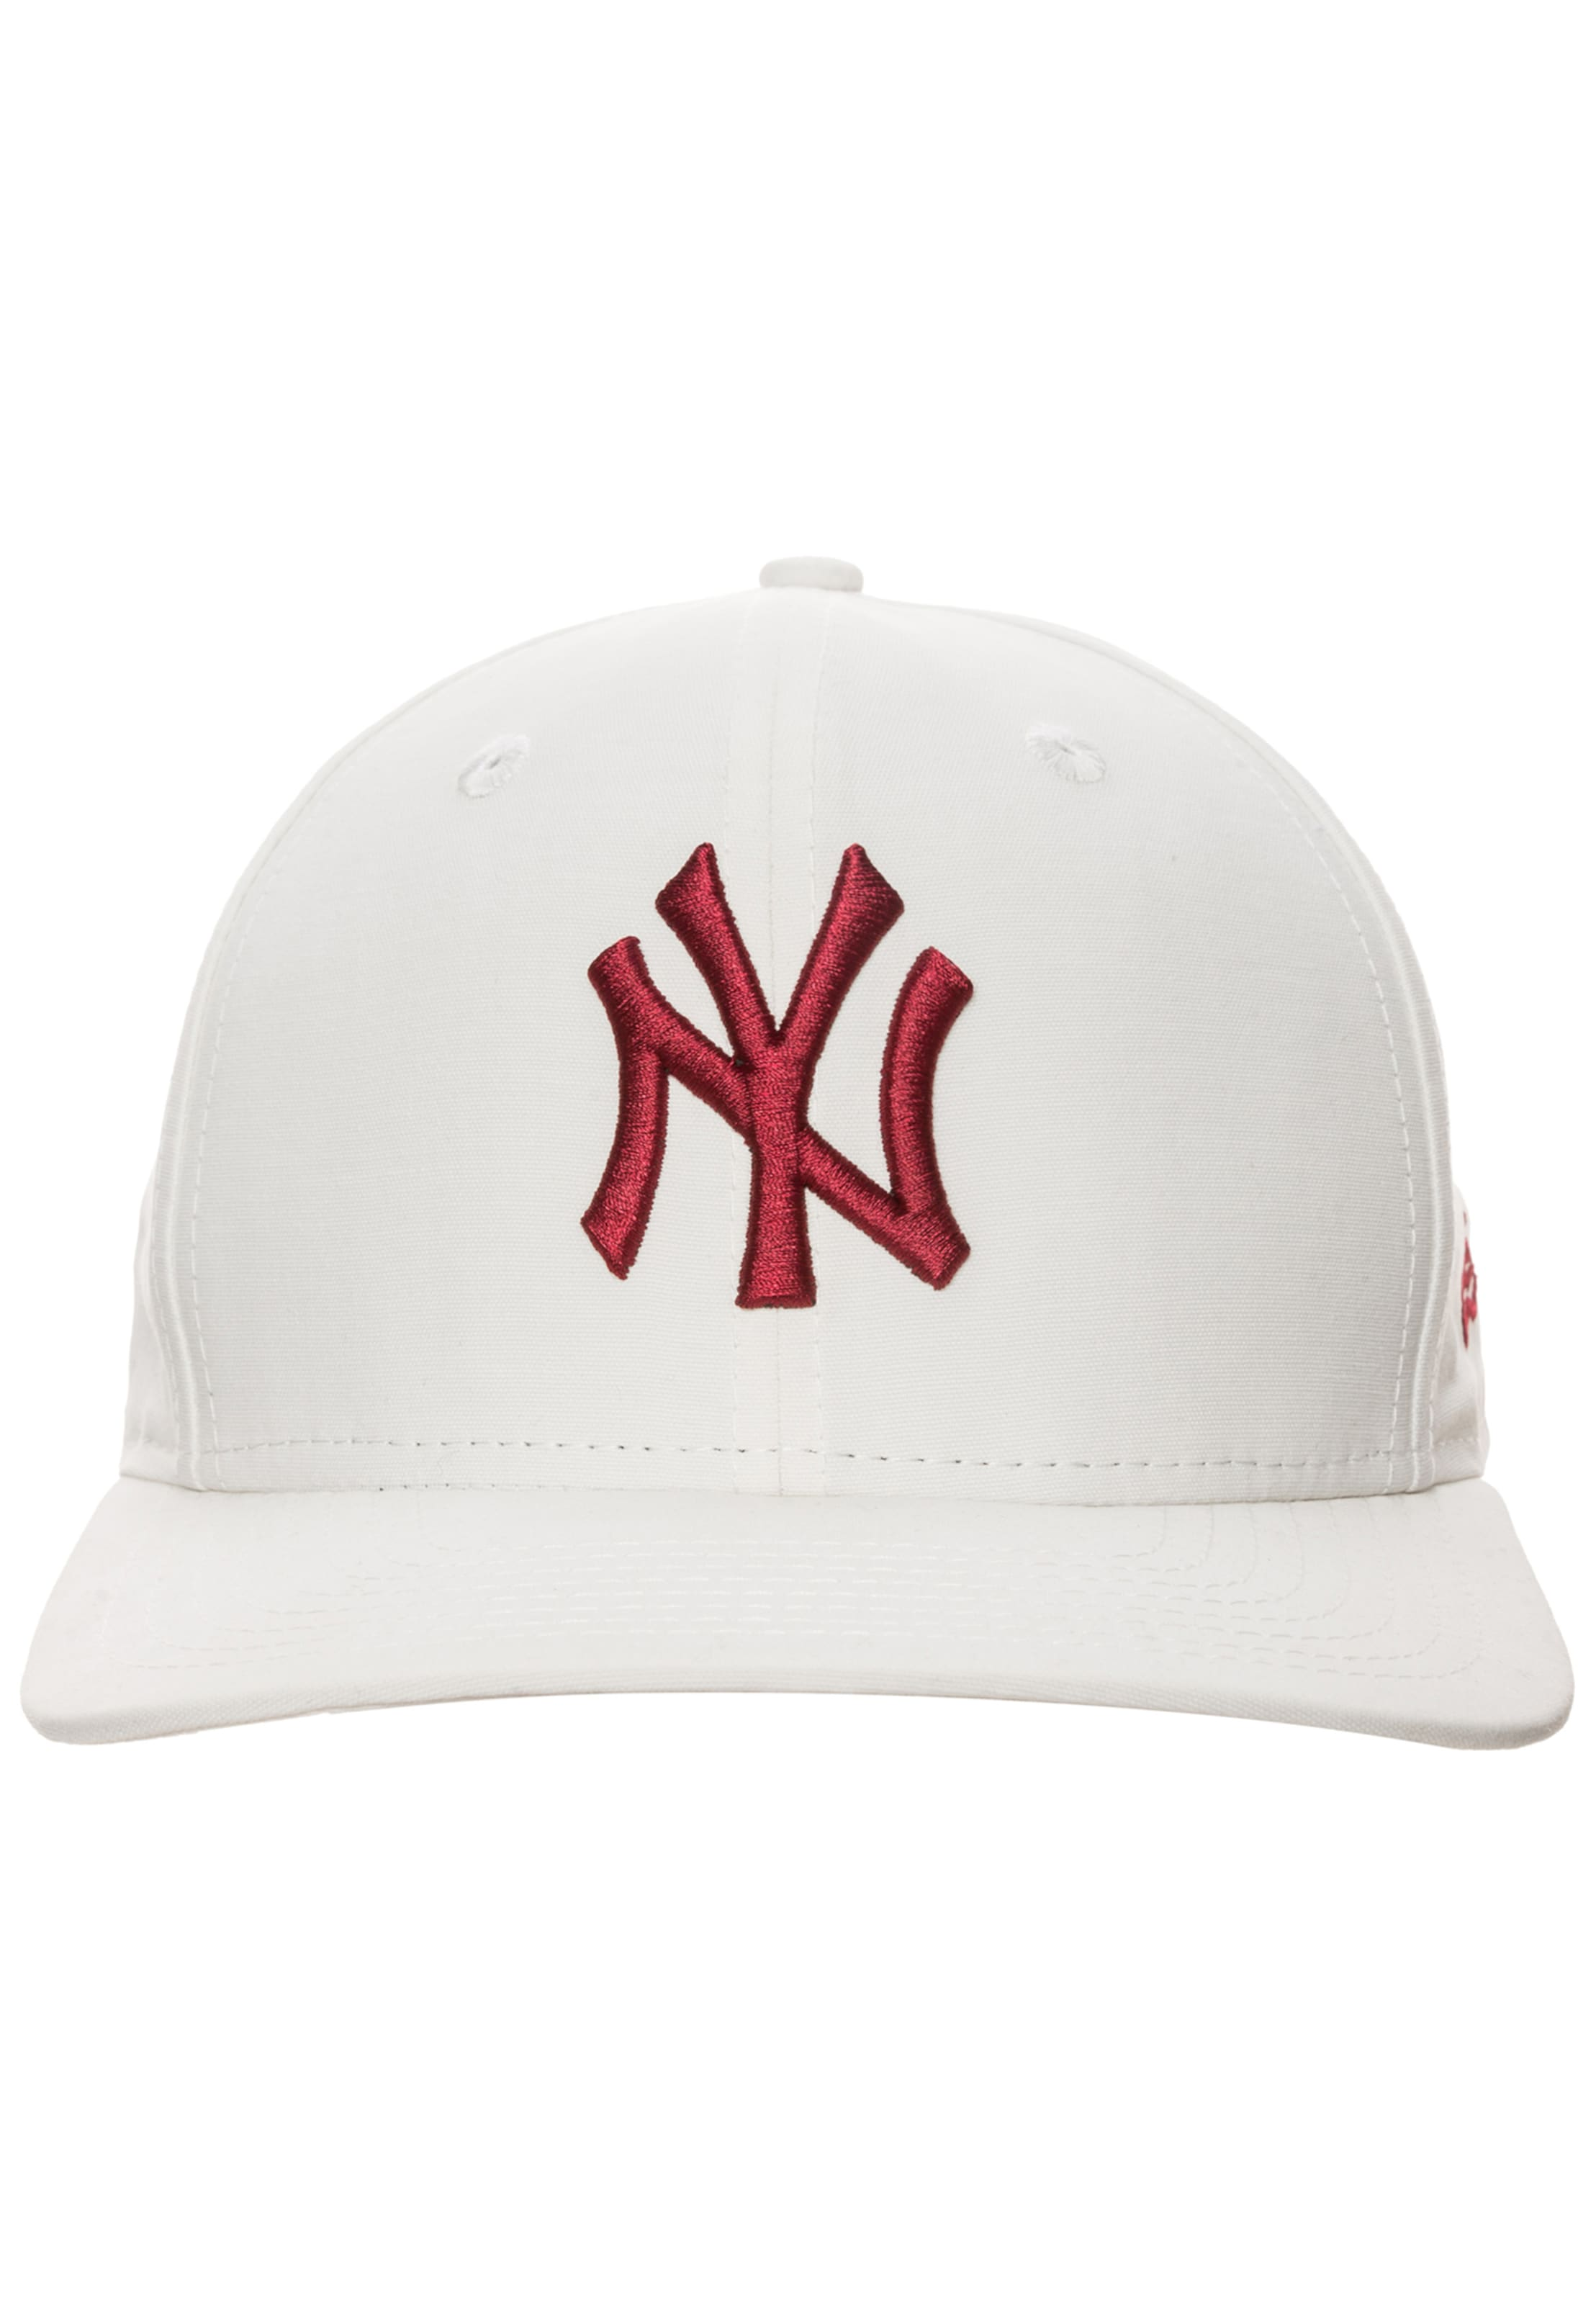 Mlb SangBlanc En New Light Era Rouge '9fifty York Casquette Weight Yankees' yvIf76Ybg